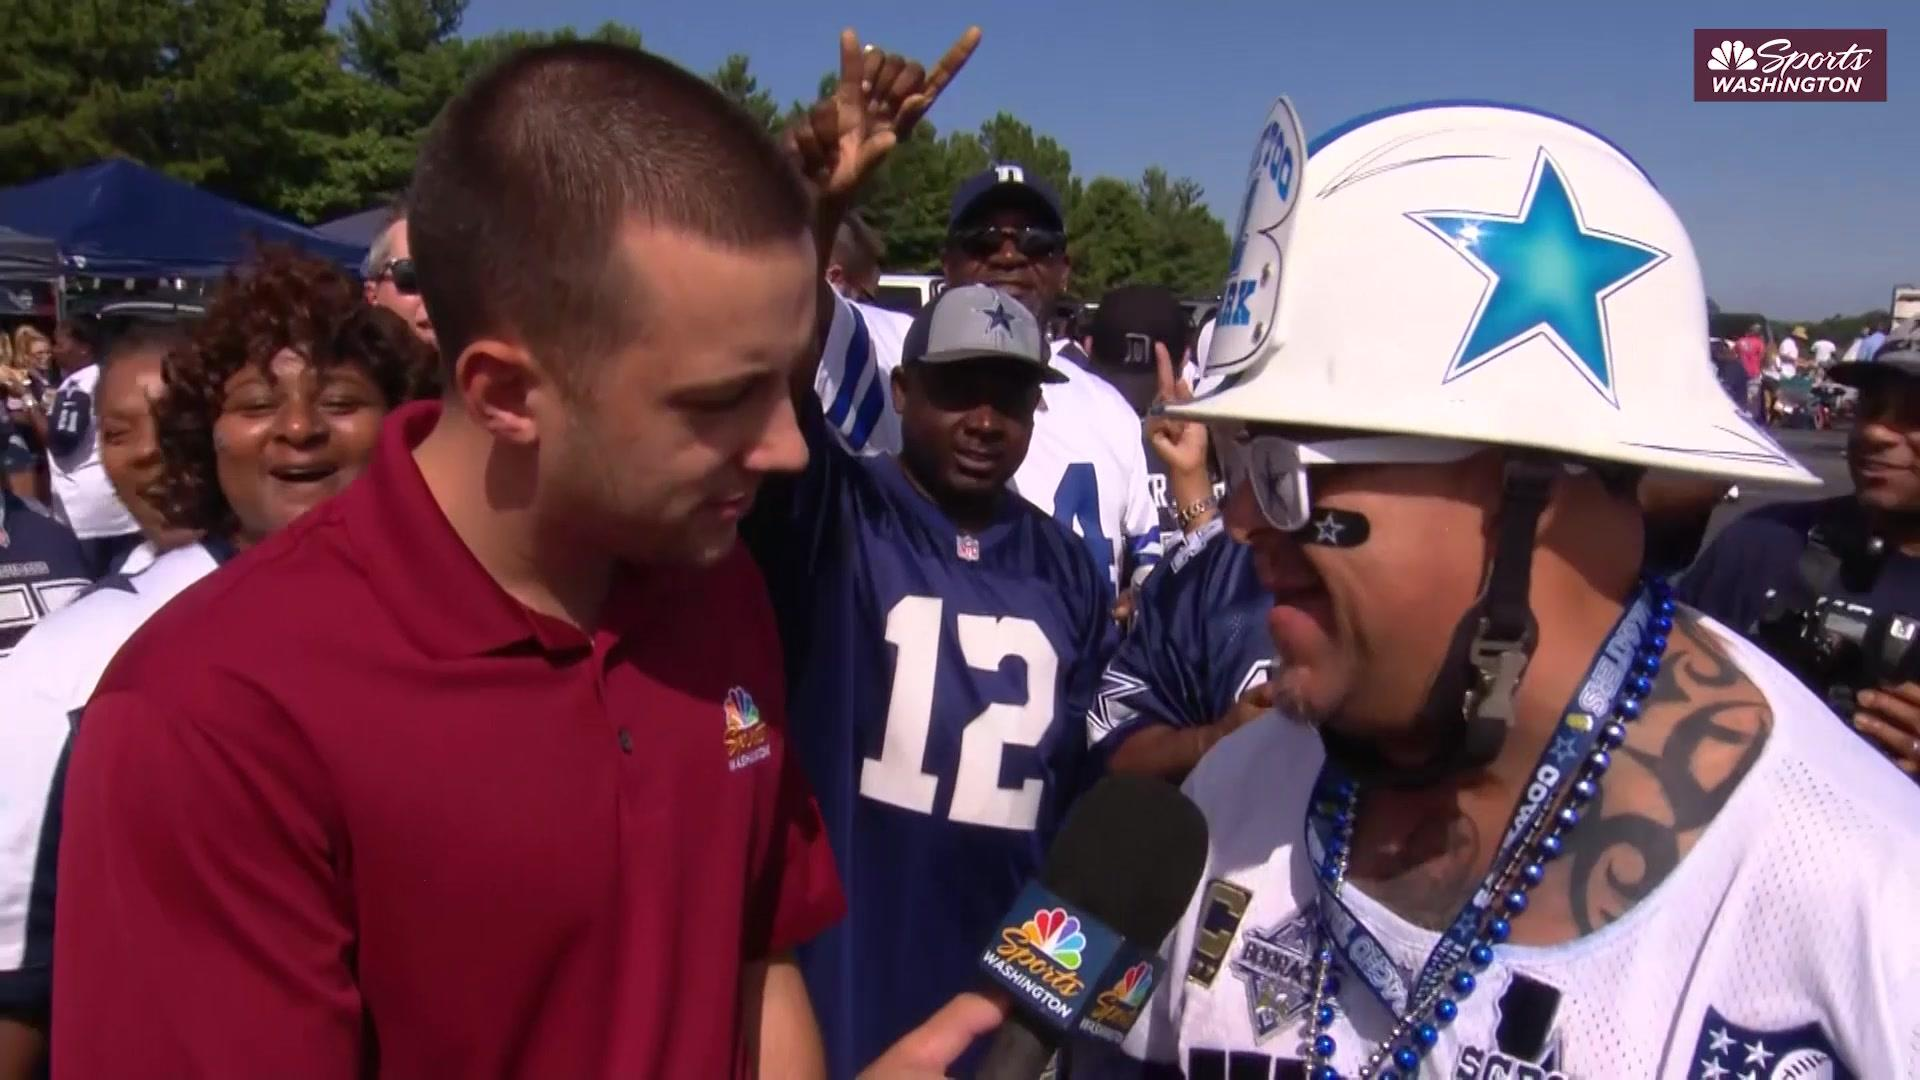 How well do Cowboys fans at FedEx know their team? An investigation